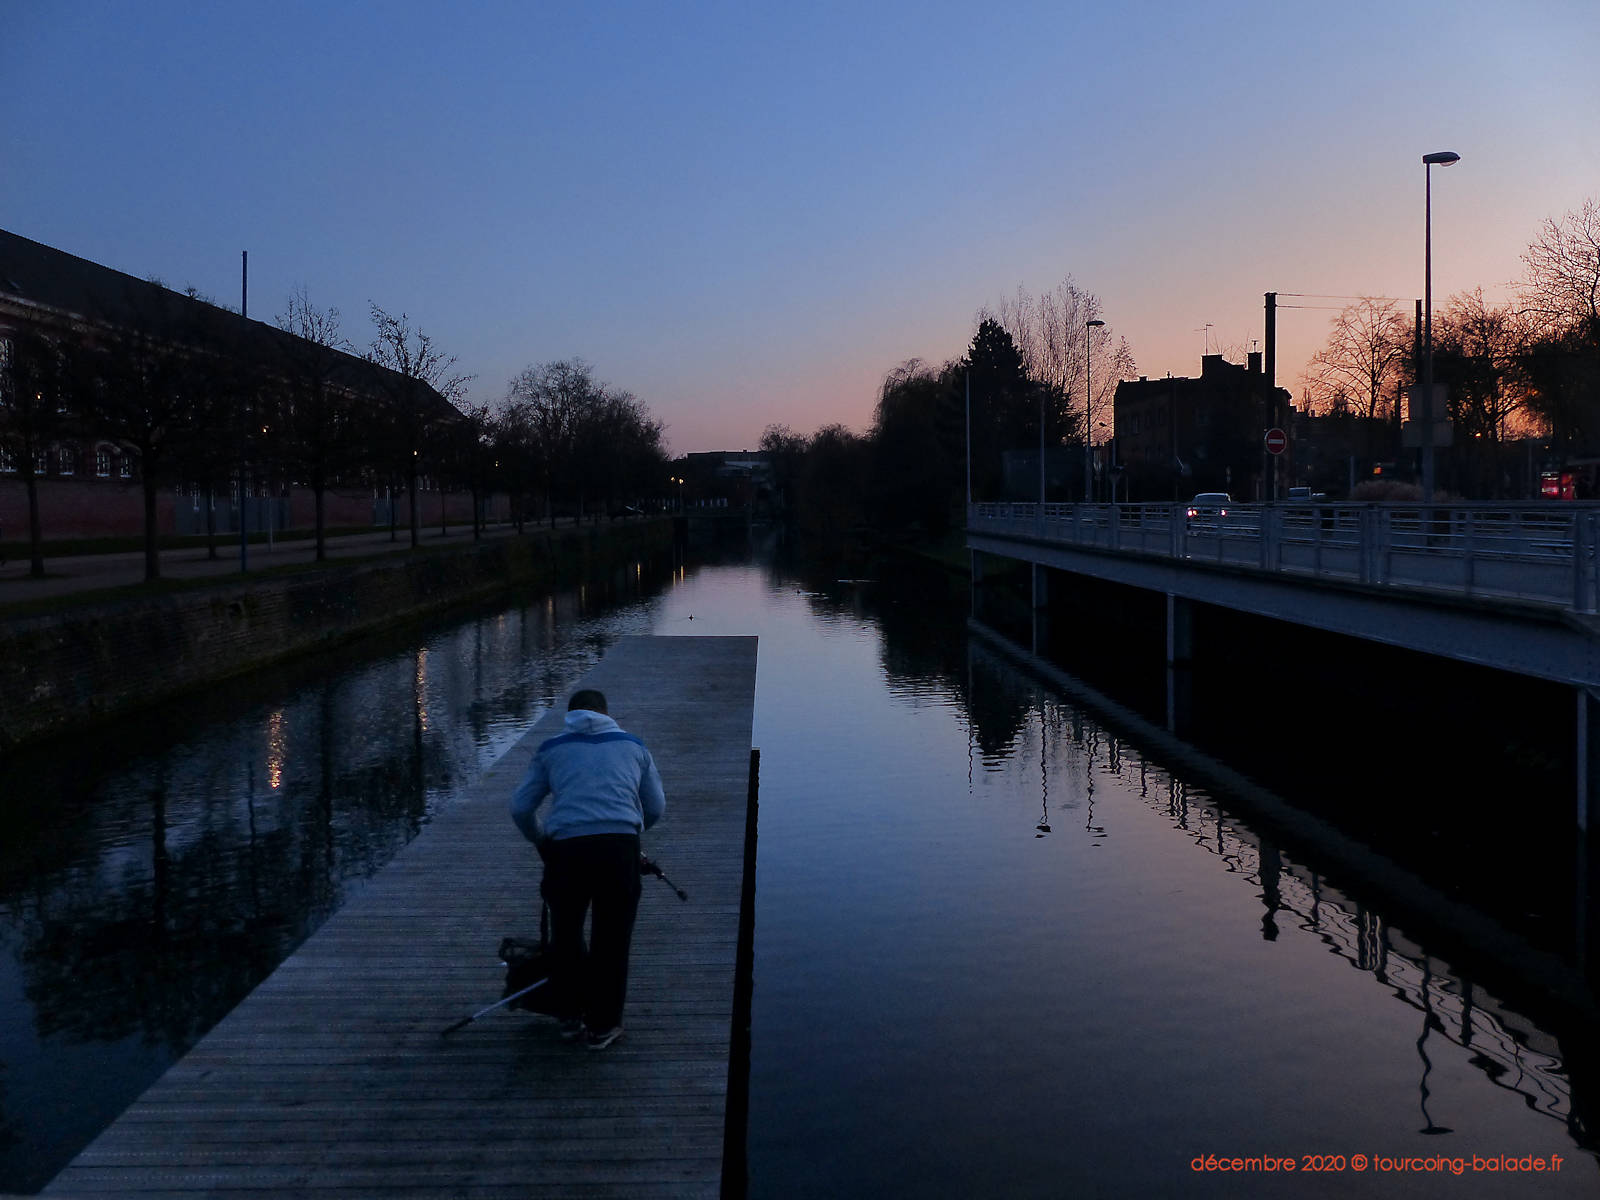 Pêche Tourcoing, Pont Hydraulique 2020